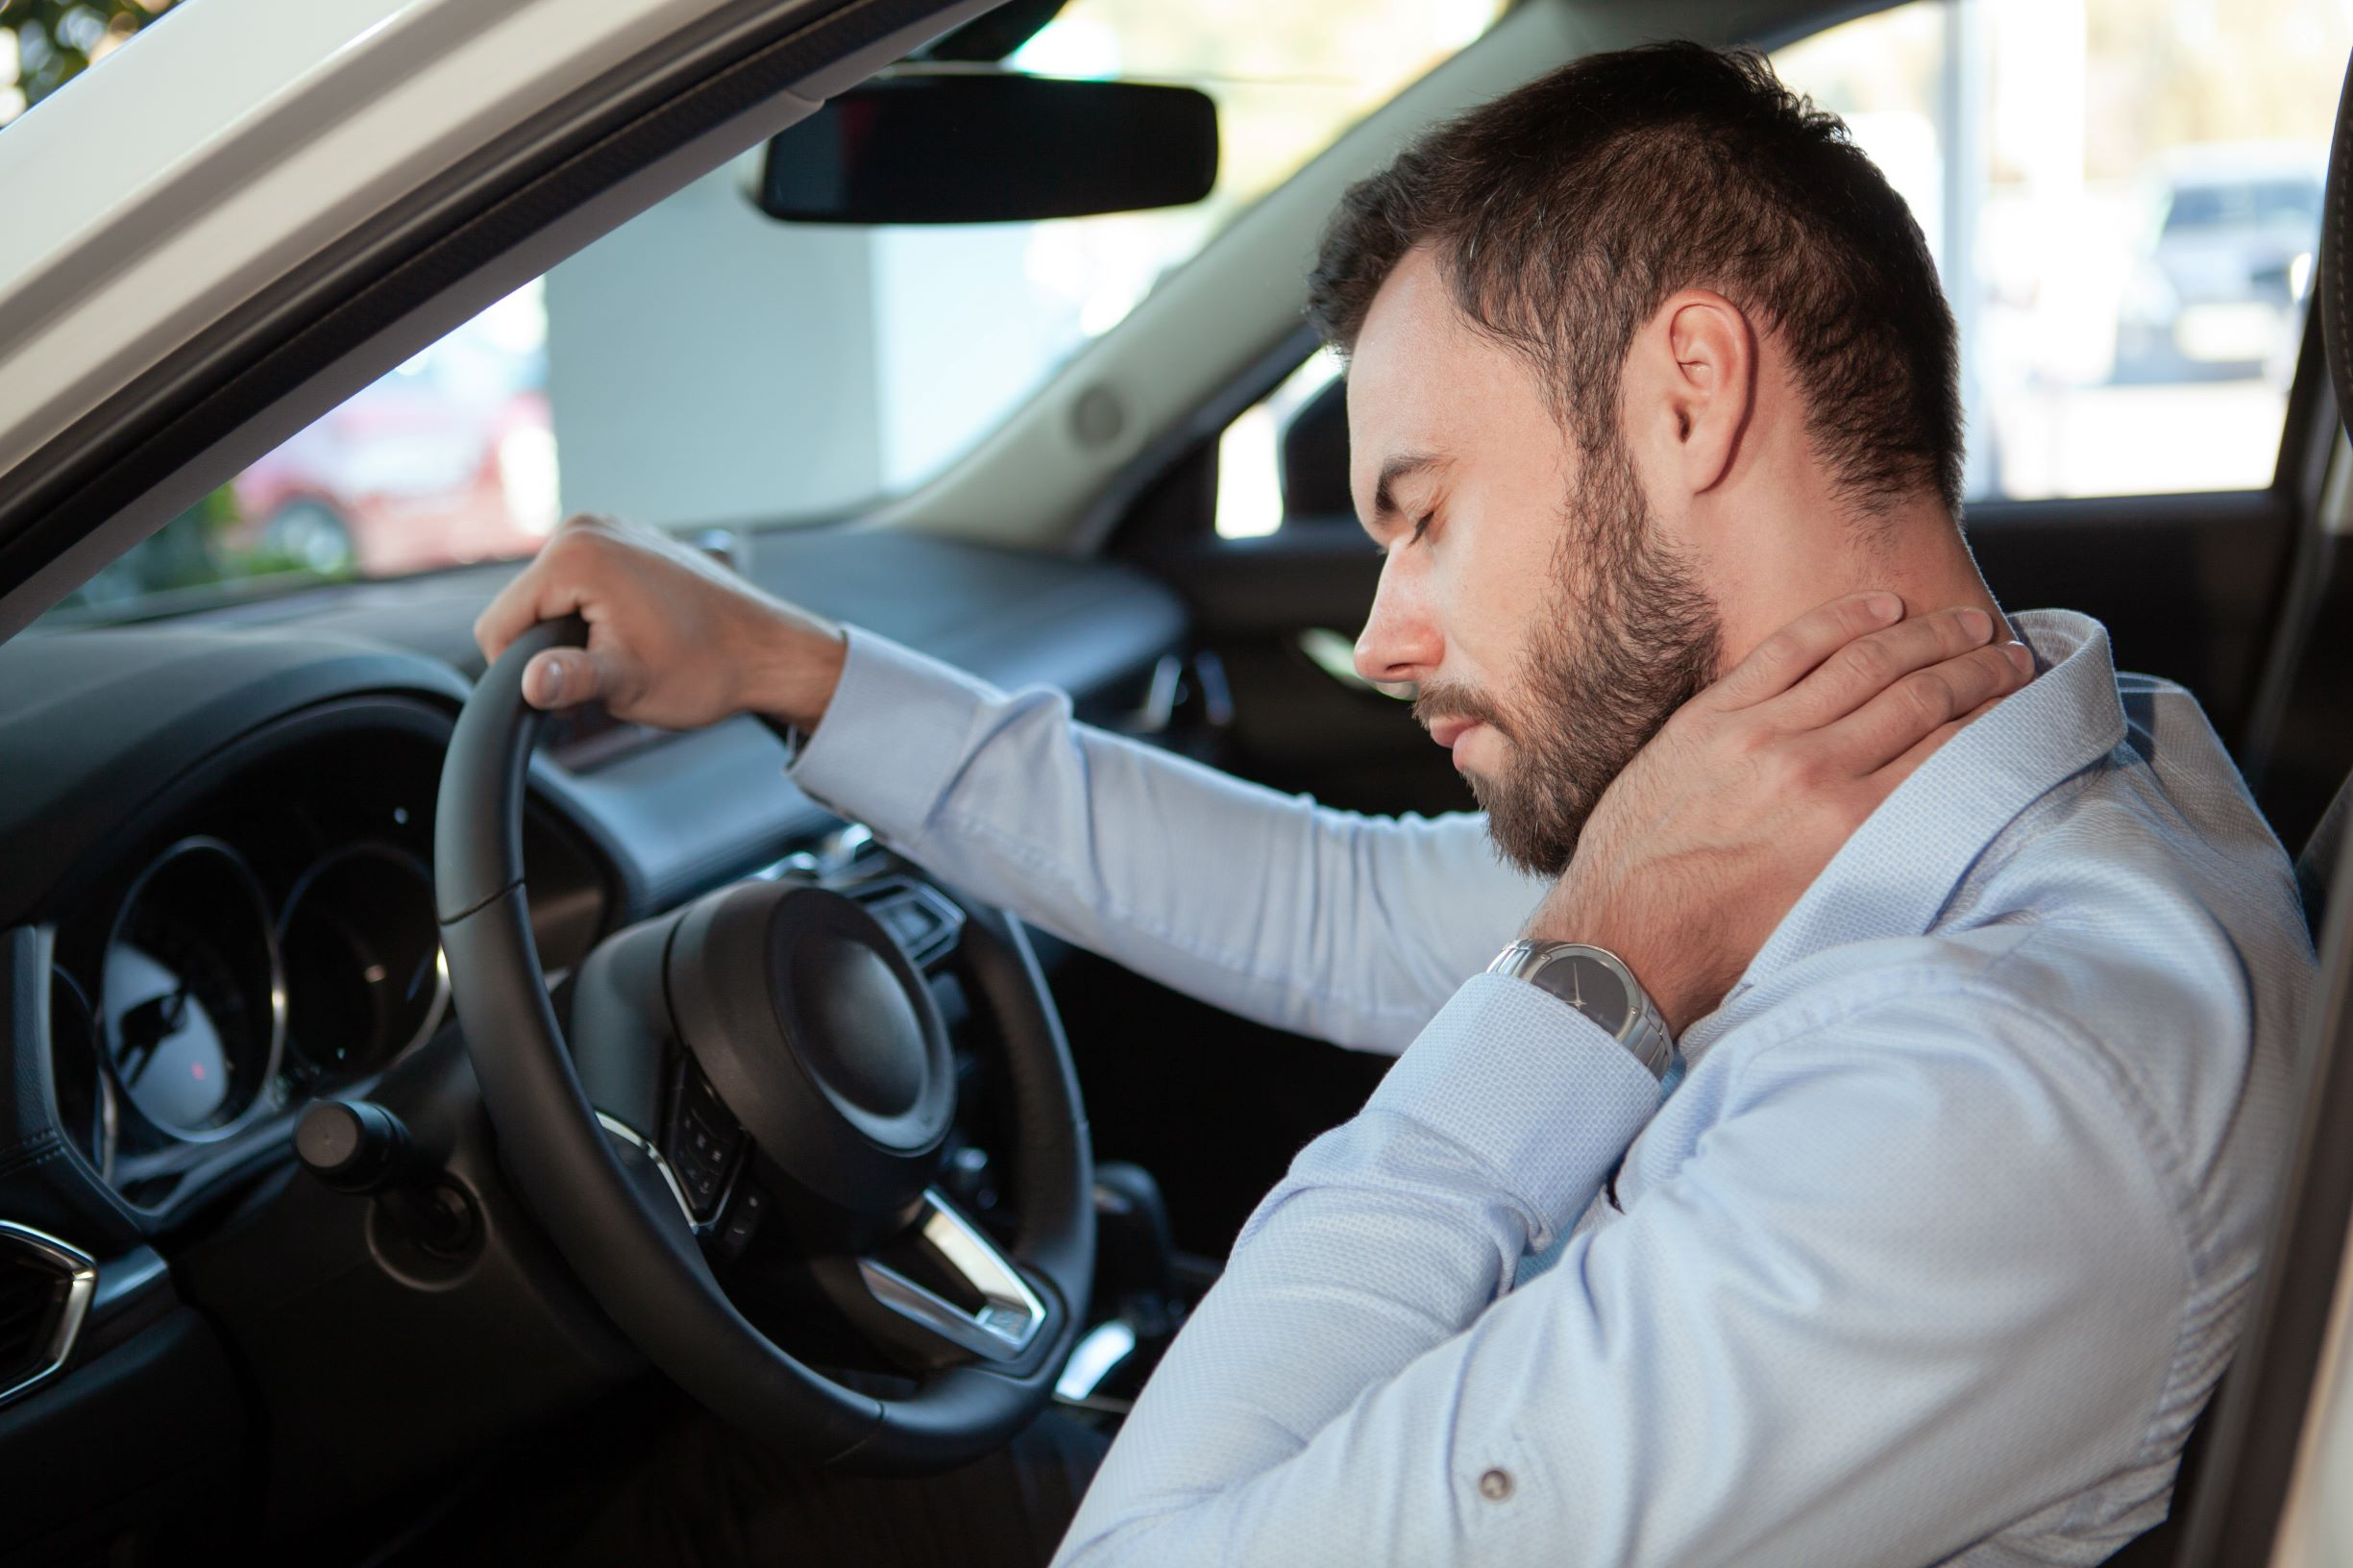 serious car accident injuries most people overlook